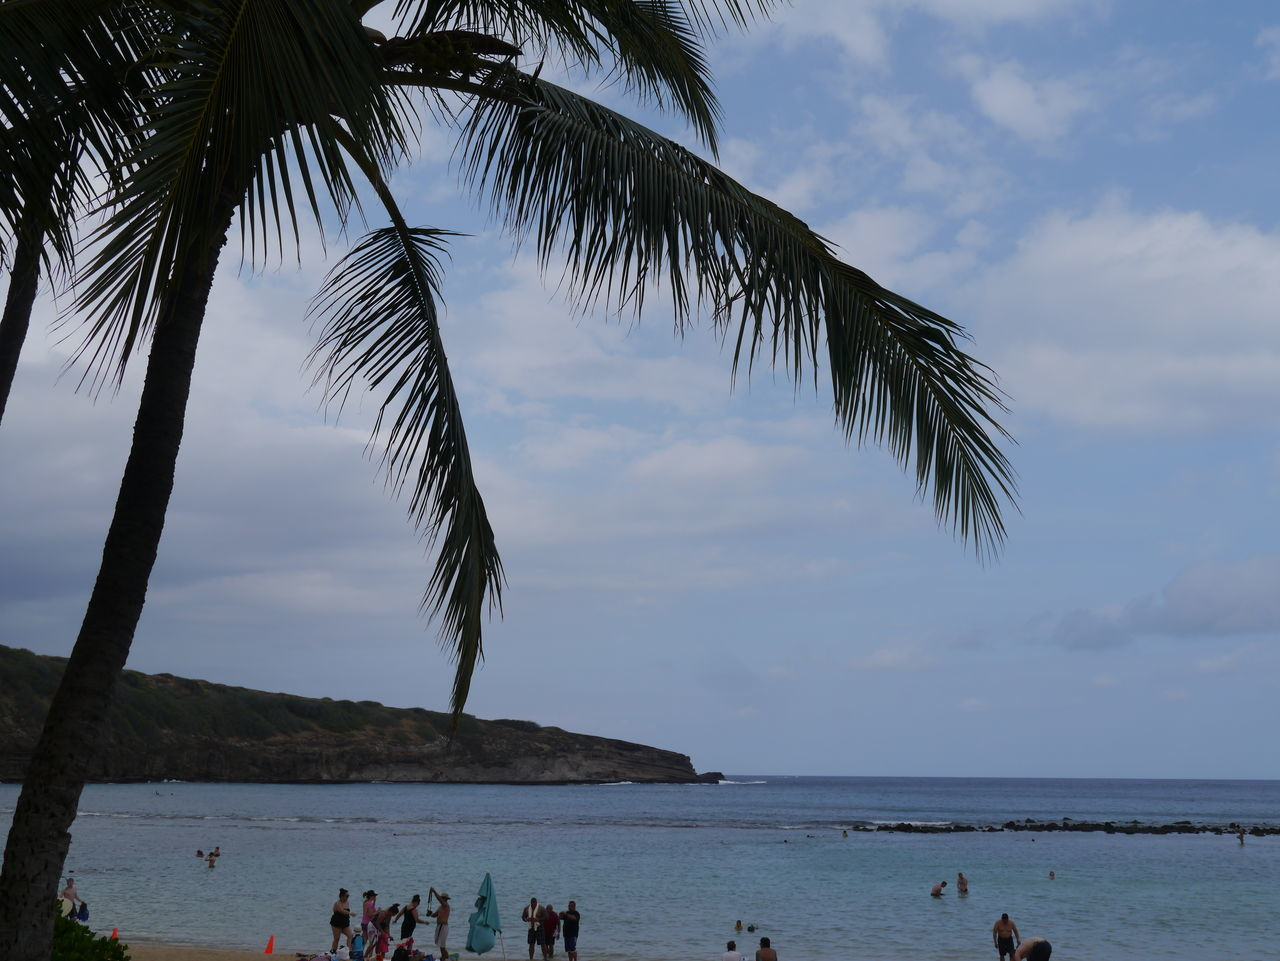 Beauty In Nature Cloud Cloud - Sky Cloudy Coastline Hanauma Bay Hanauma Bay State Park Horizon Over Water Leisure Activity Lifestyles Mixed Age Range Nature Non-urban Scene Outdoors Scenics Sea Shore Sky Tatonic Plate Tourism Tourist Tranquil Scene Tree Vacations Water